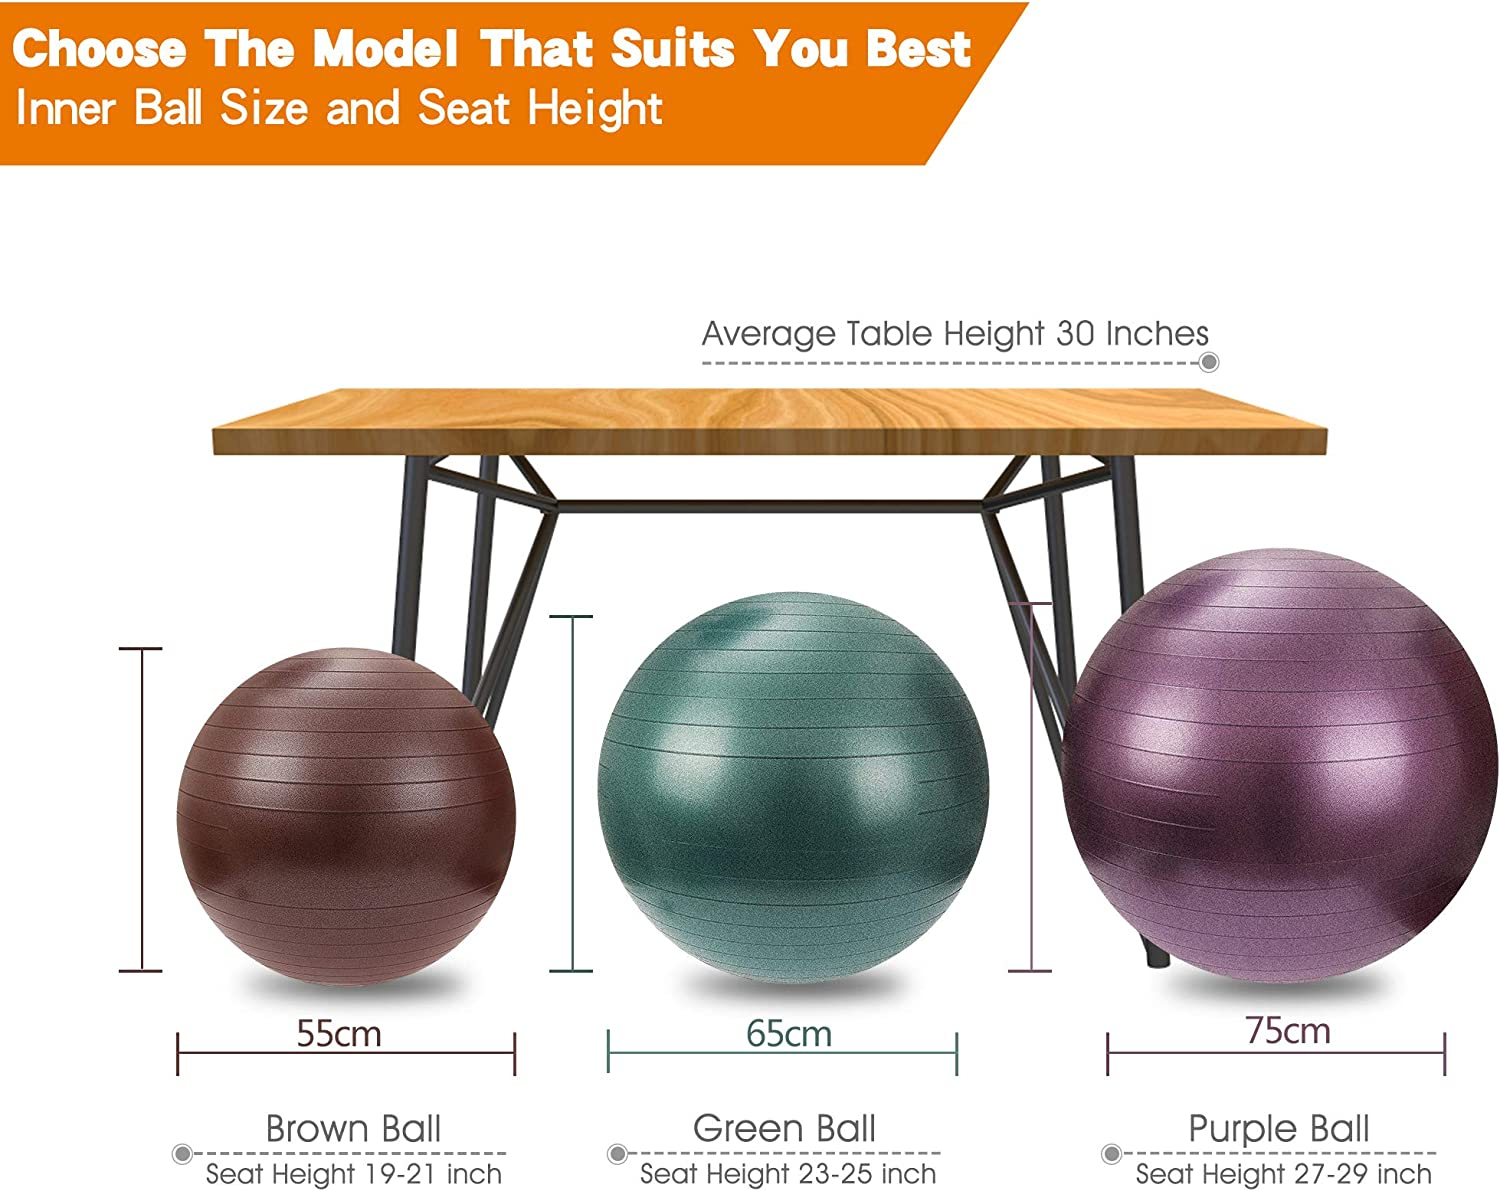 SportShiny Pro Balance Ball Chair Exercise Stability Yoga Ball with Cozy Slipcover,Stability Ring/&Air Pump for Office/& Home Desk,Improve Balance,Core Strength/&Posture,Relieve Back Pain,Multicolor